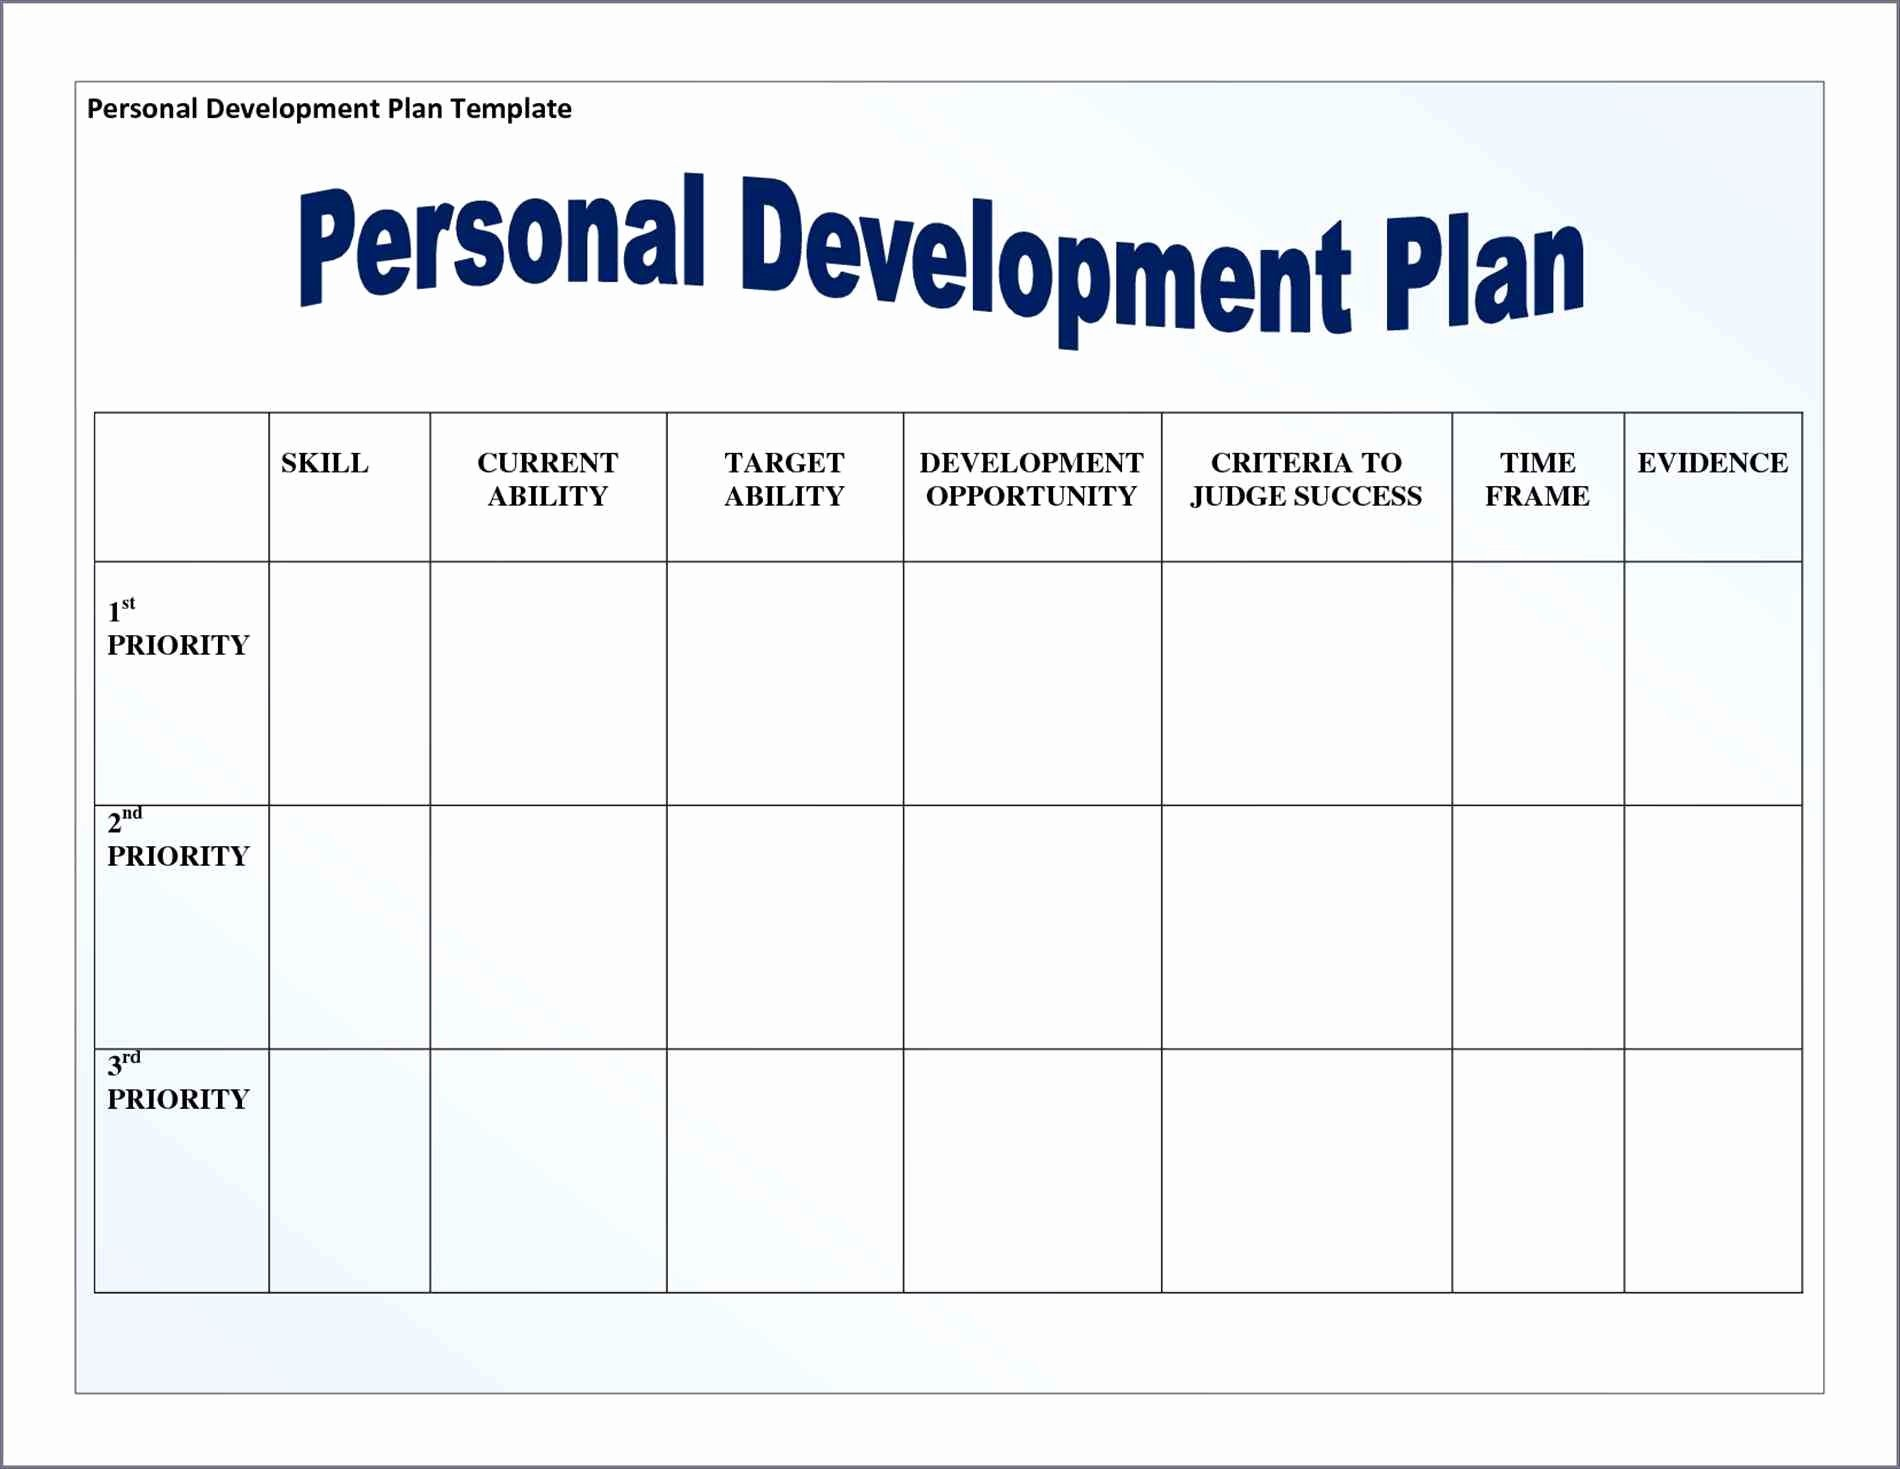 Development Plan Template Word Fresh Personal Development Plan Template Word